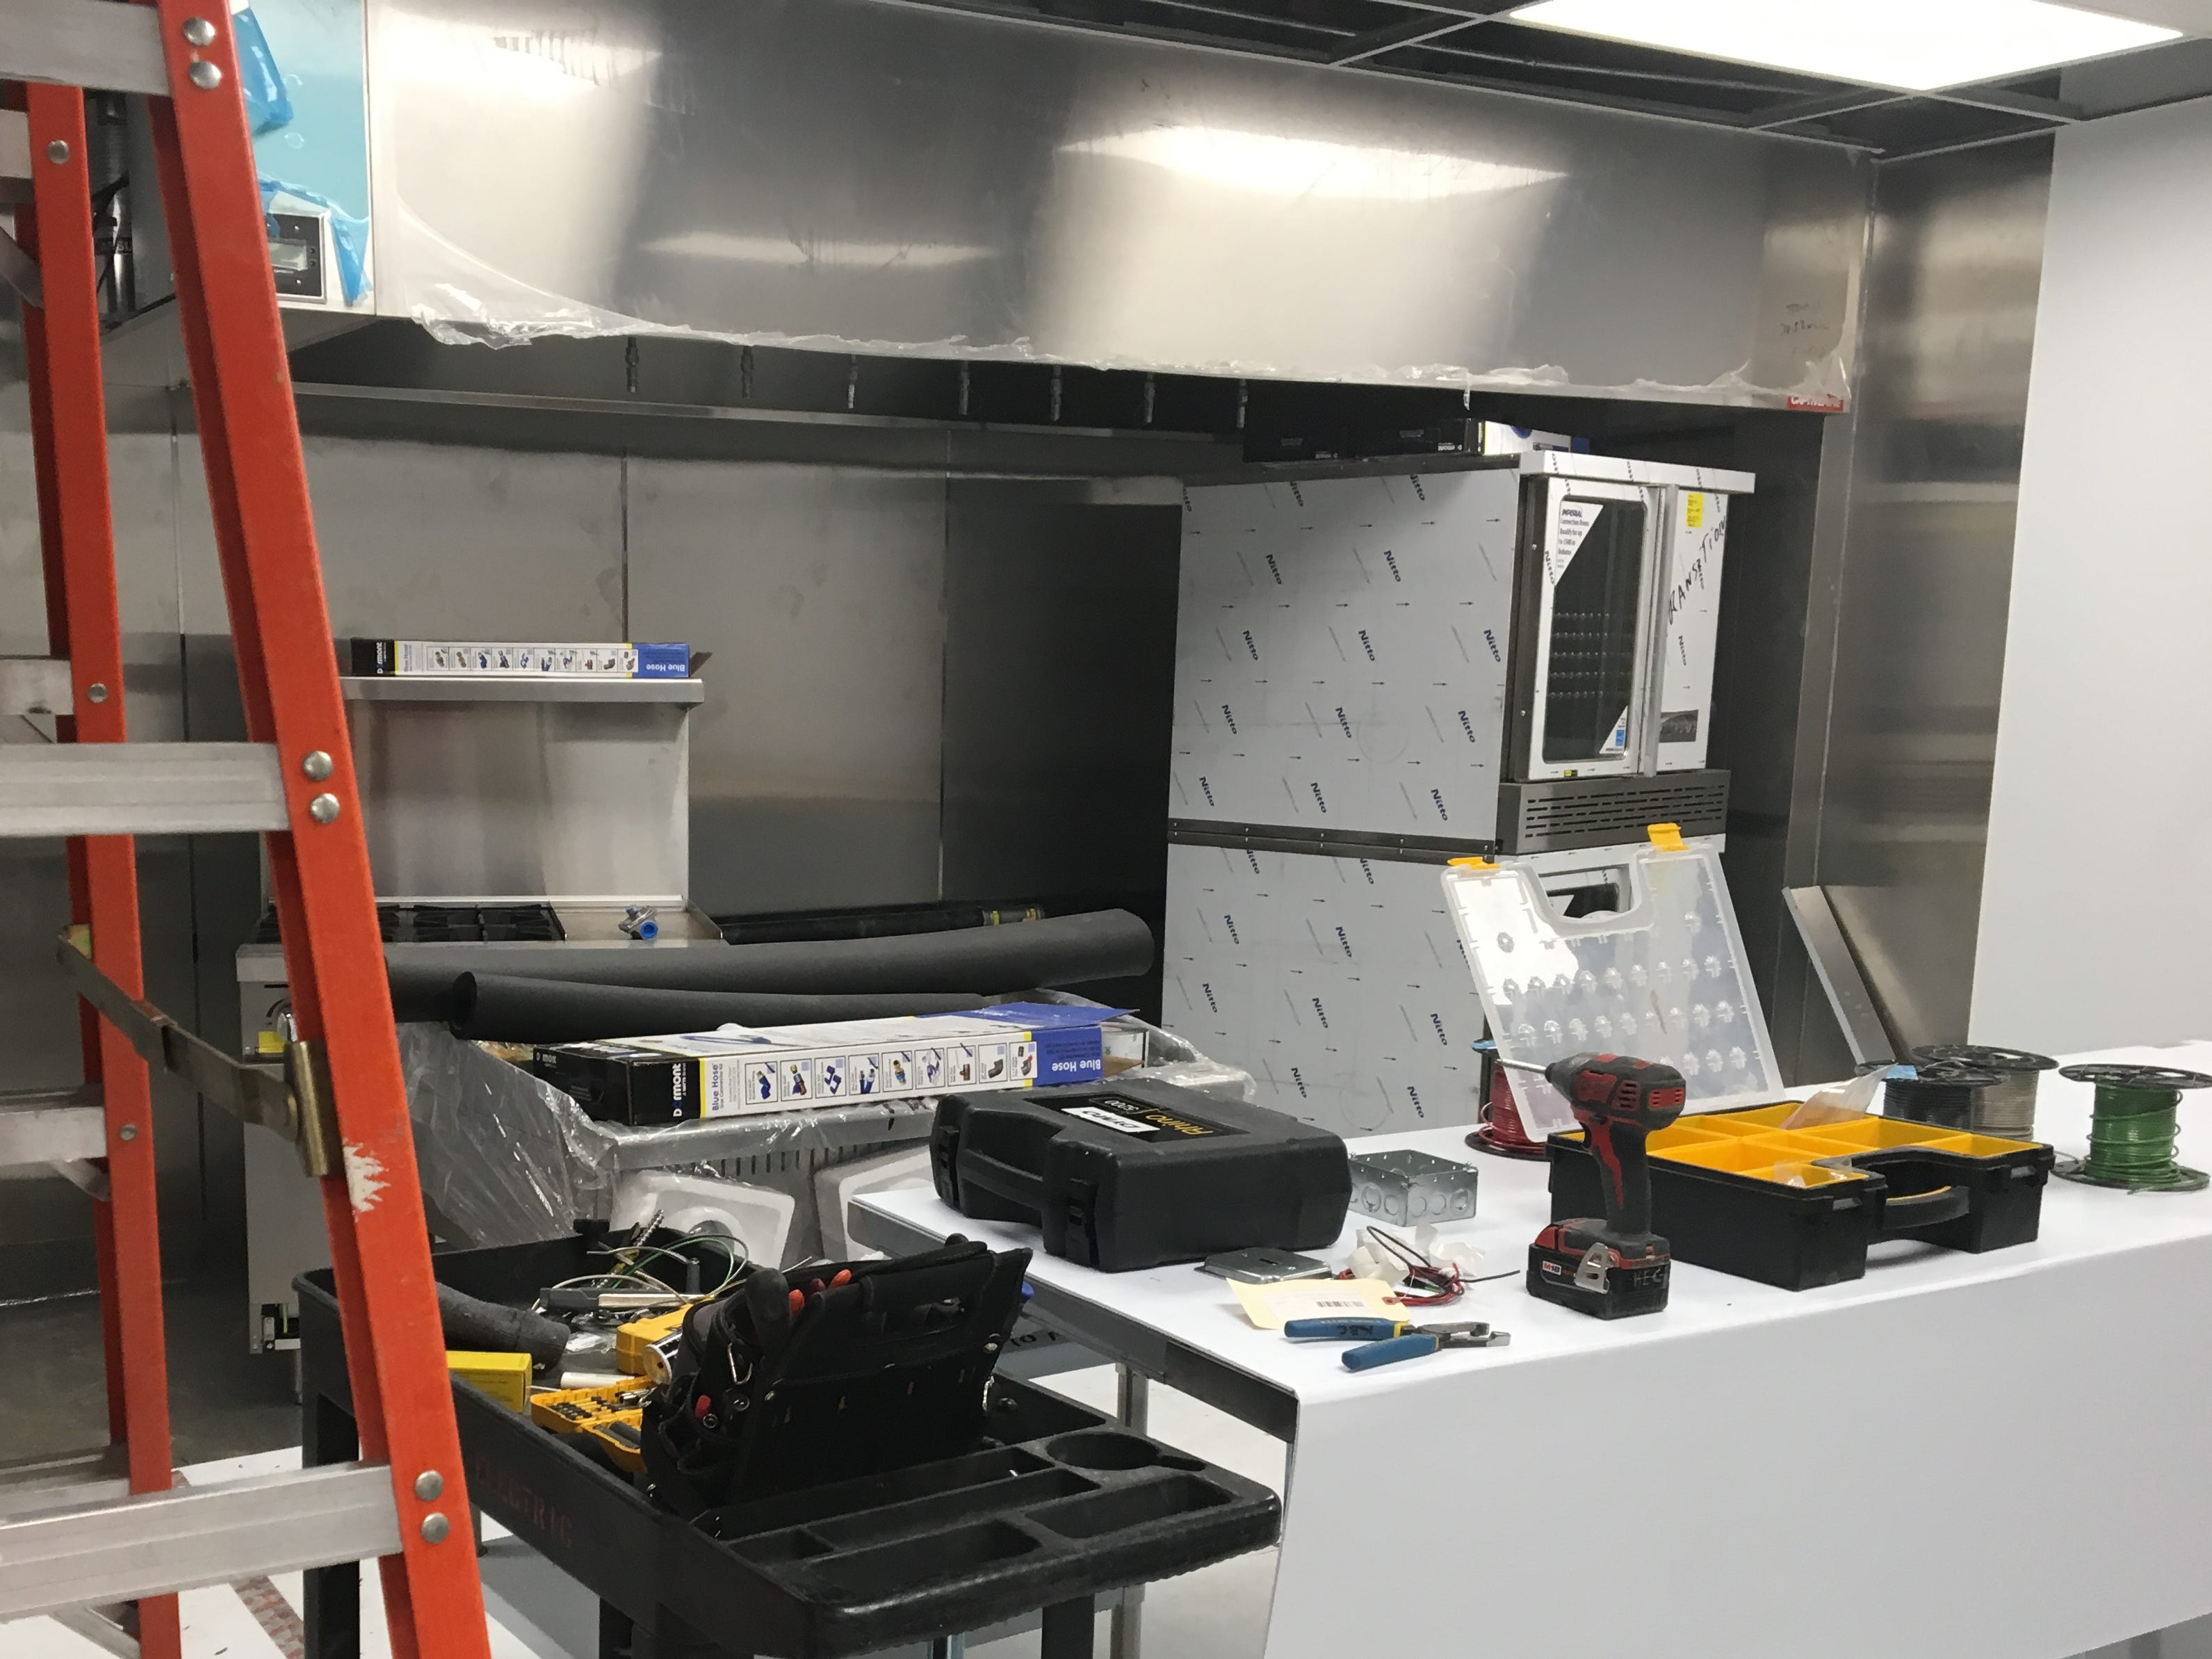 The cafeteria features a full kitchen.